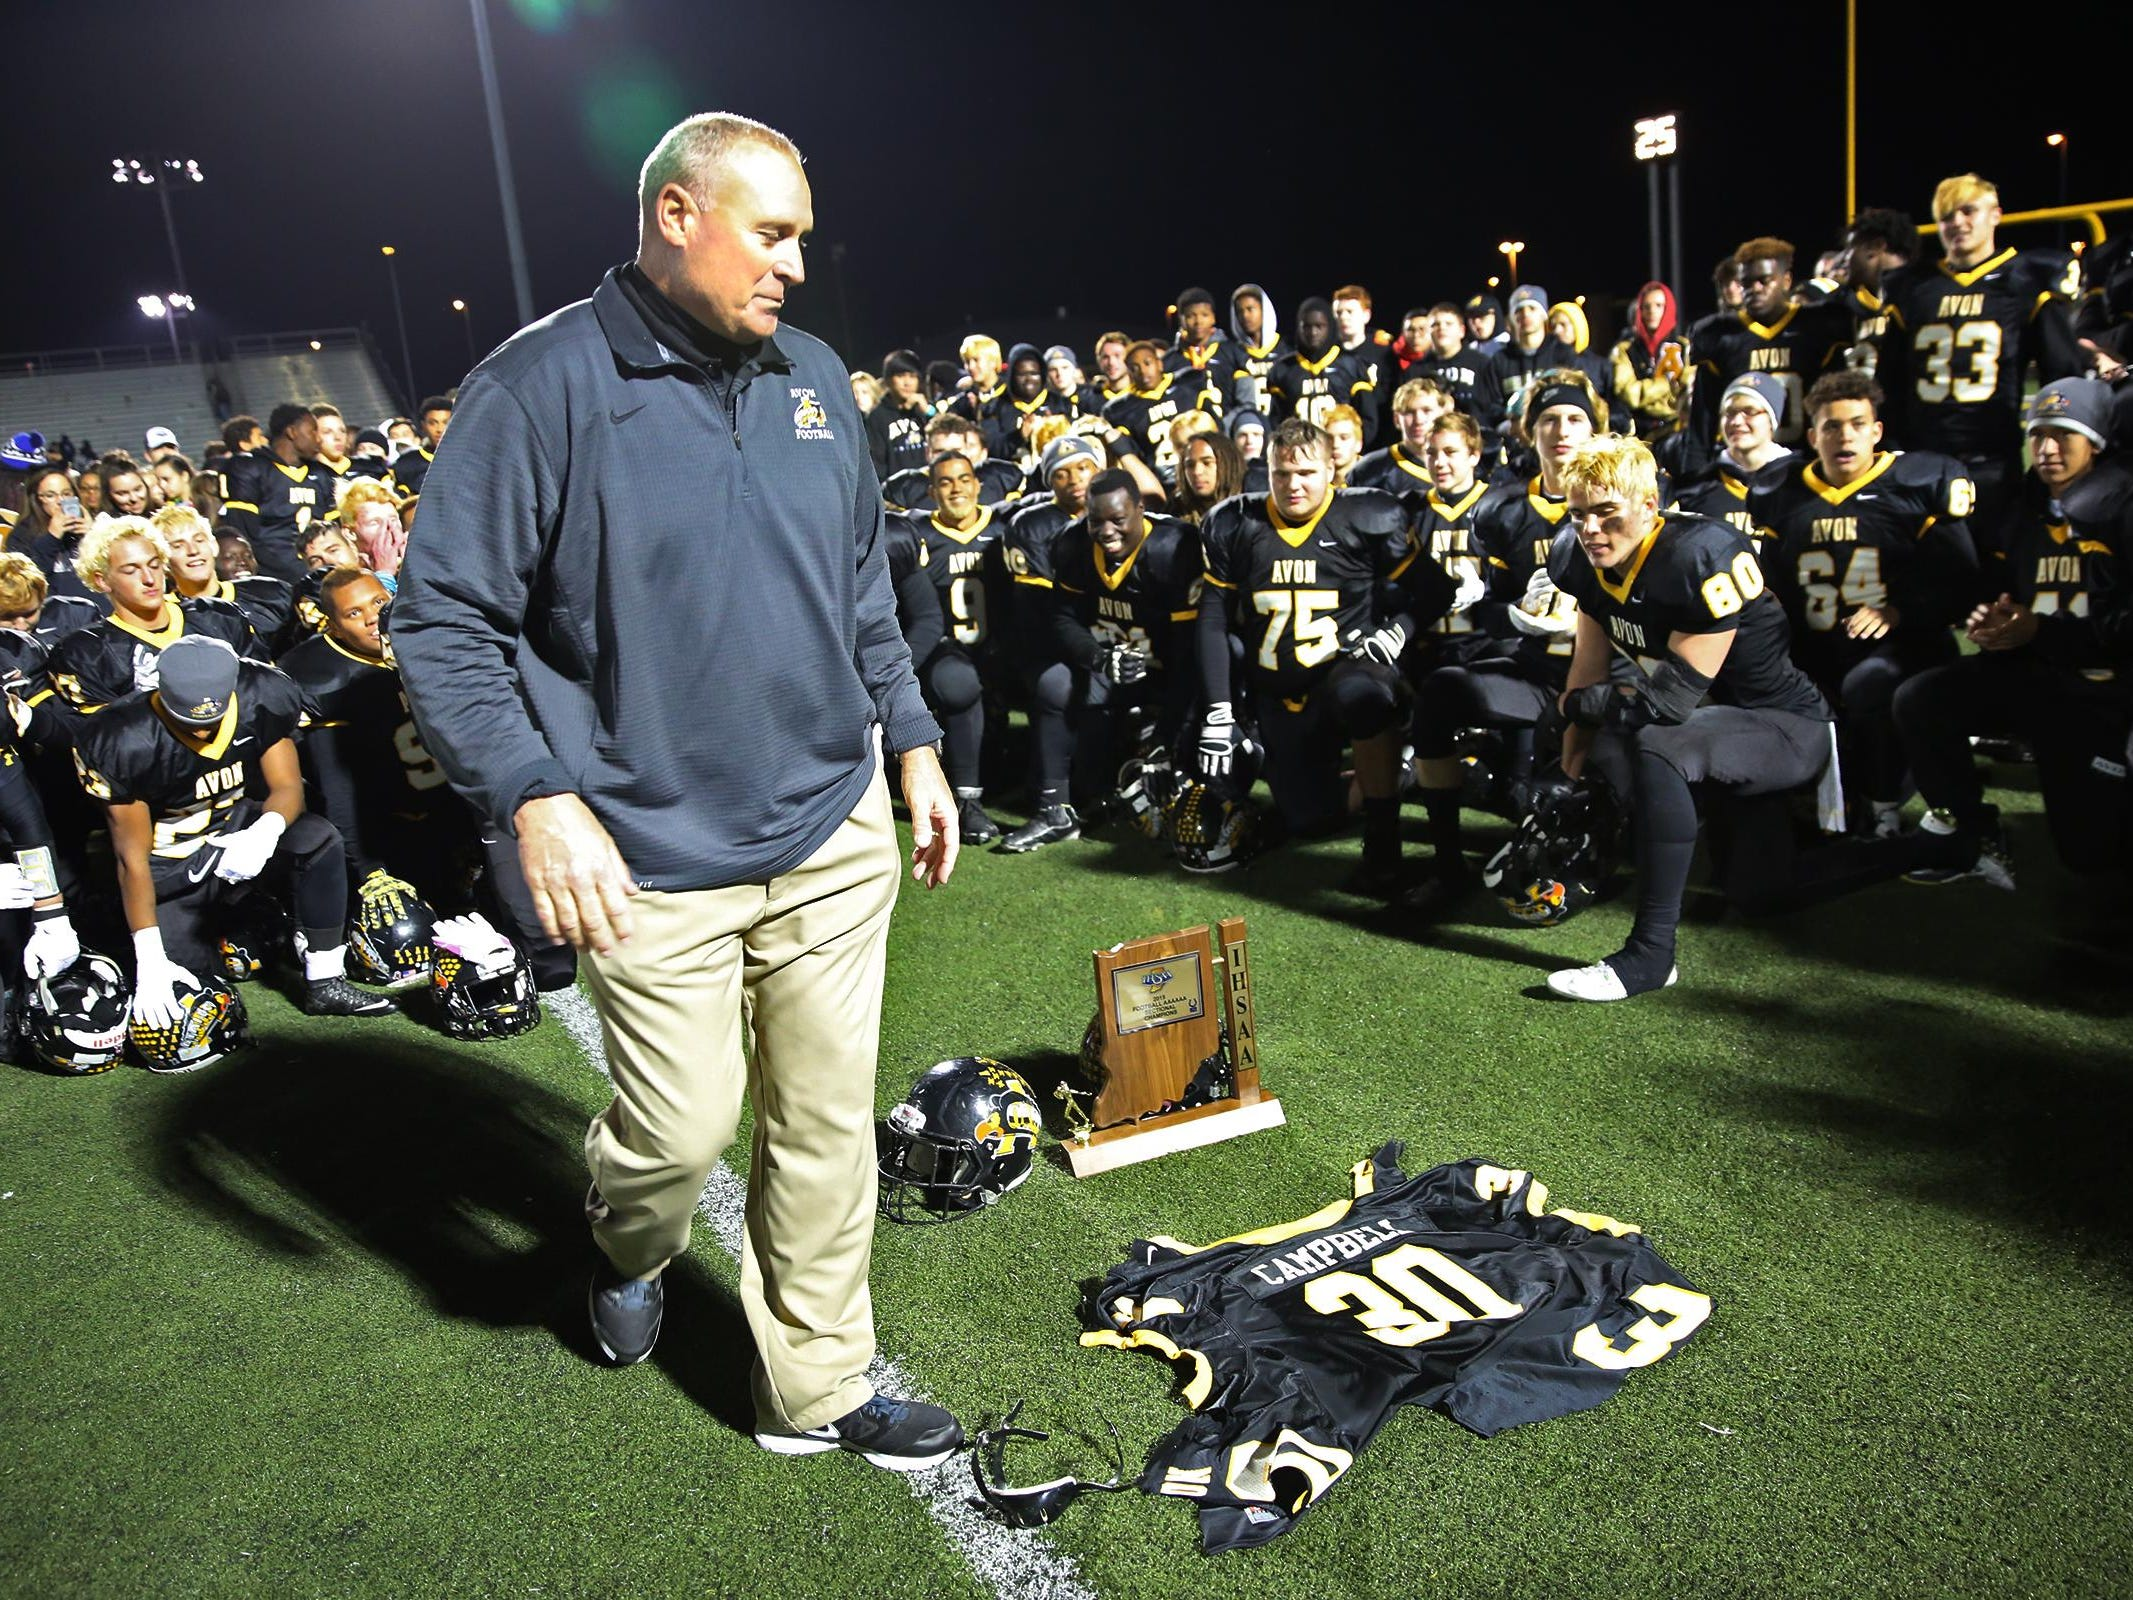 Avon head football coach Mark Bless looks at injured player Scott Campbell's jersey that players held up after the team victory after the Ben Davis at Avon sectional championship, Friday, October 30, 2015. Avon won 27-22. Campbell was injured during the first half and taken off the field by stretcher, then by ambulance to the hospital. Teammates said they won the game for Scott.